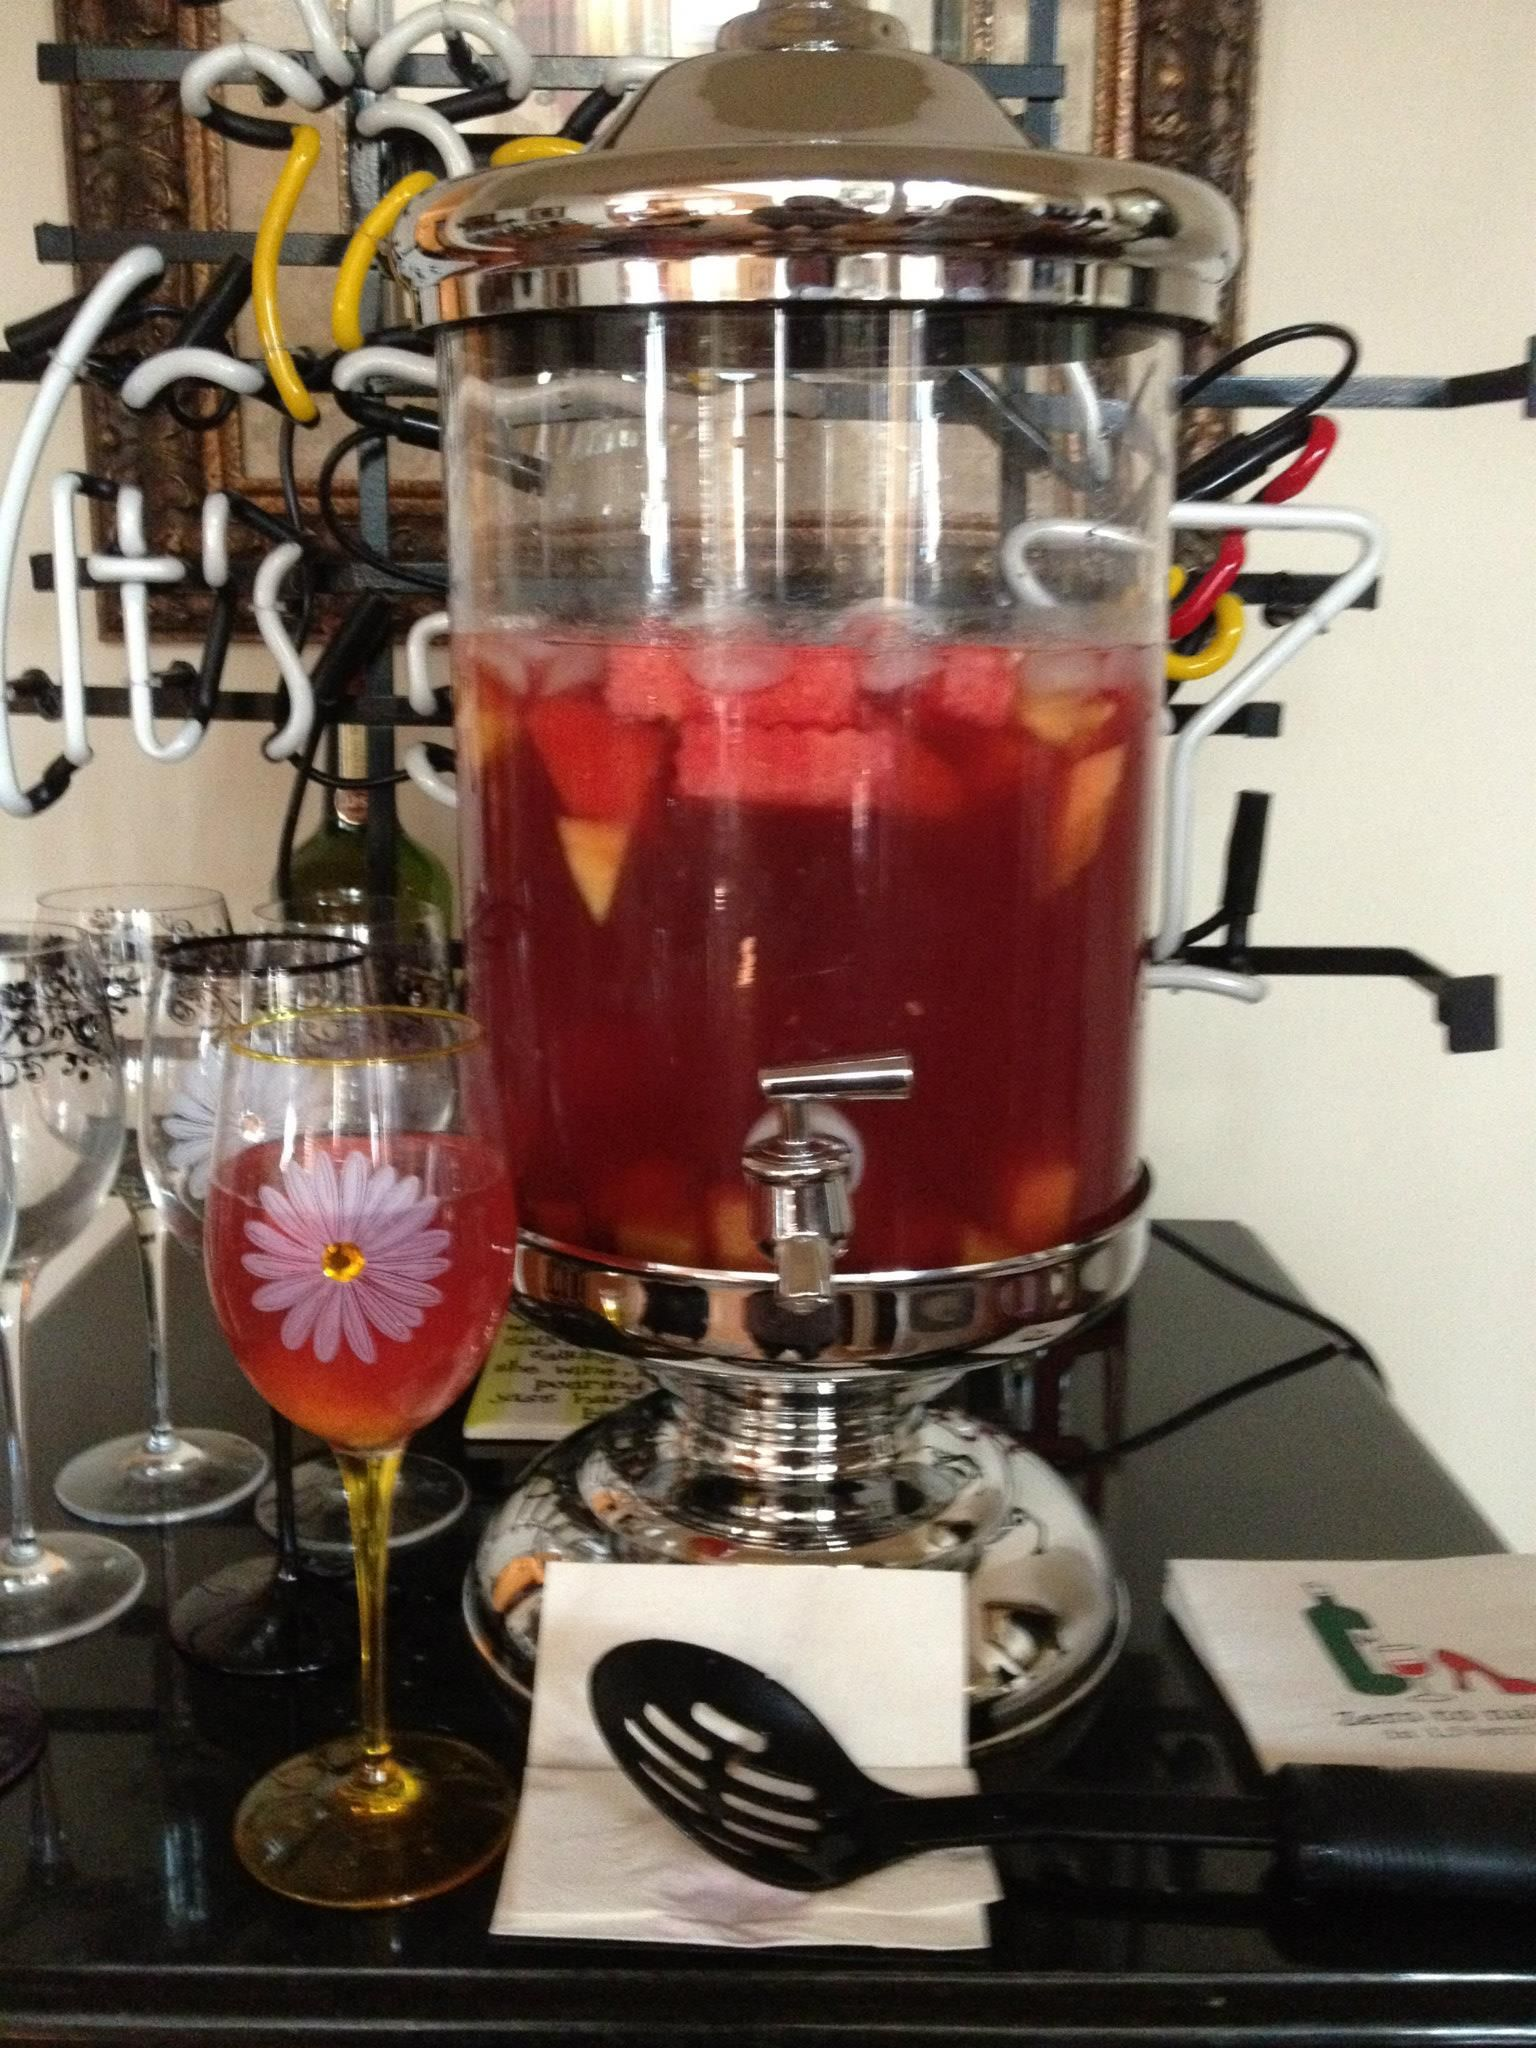 Watermelon and Dragon Fruit Sangria. 1 bottle rose wine, 1 bottle white wine, 1 2 liter bottle sprite, 1 2 liter bottle lemonade, 1c sugar, 1c dragon fruit vodka, various fruit cut into chunks- including watermelon. I also like blueberries and pineapple. The watermelon flavor really comes through. If it is too sweet, add more wine or liquor to taste.